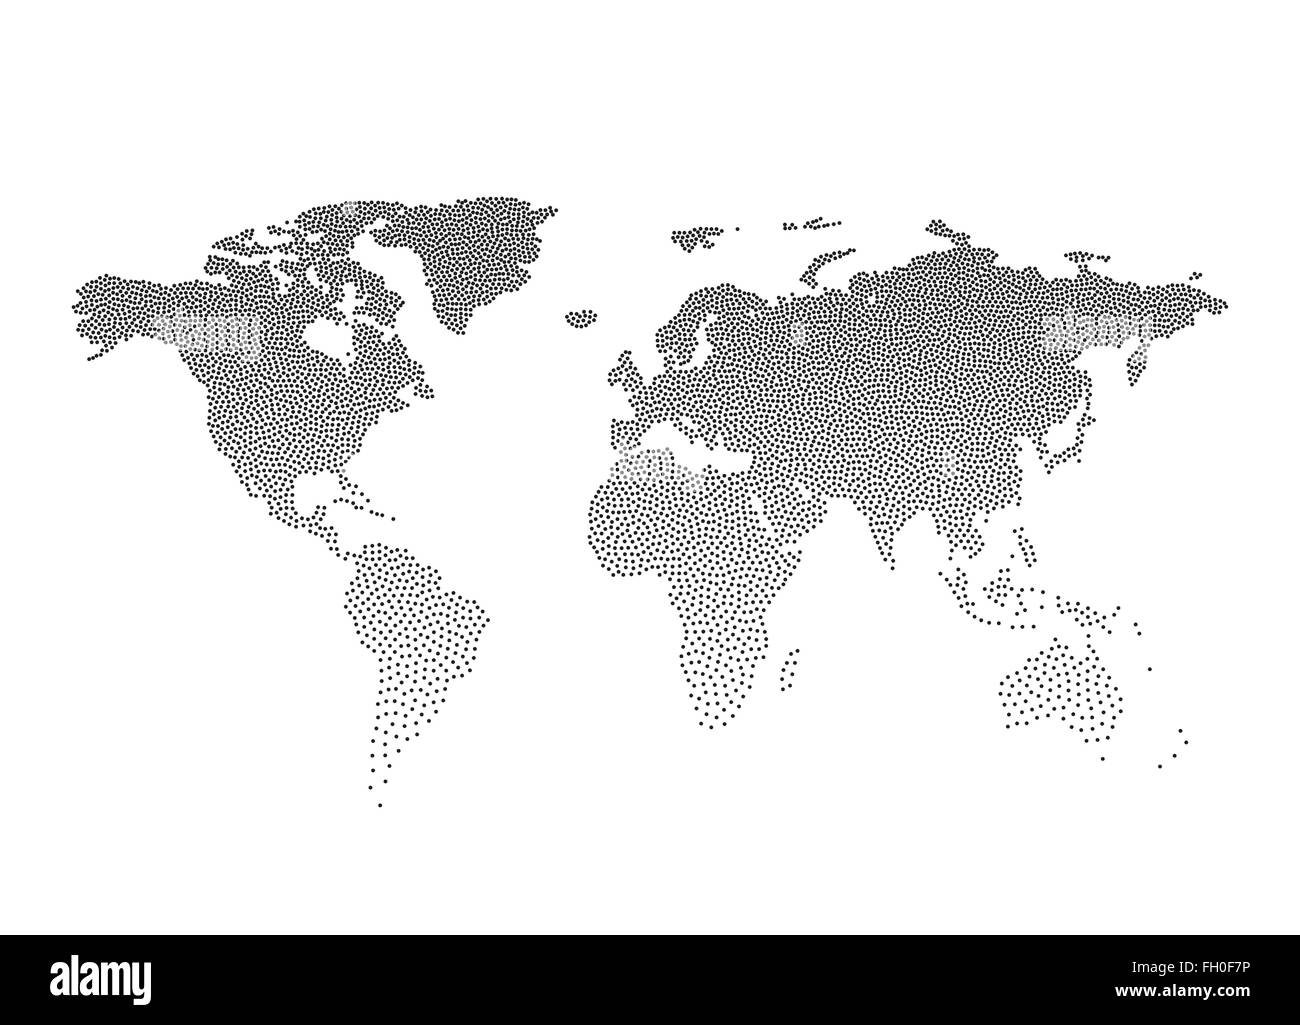 Black dotted world map vector illustration stock vector art black dotted world map vector illustration gumiabroncs Image collections